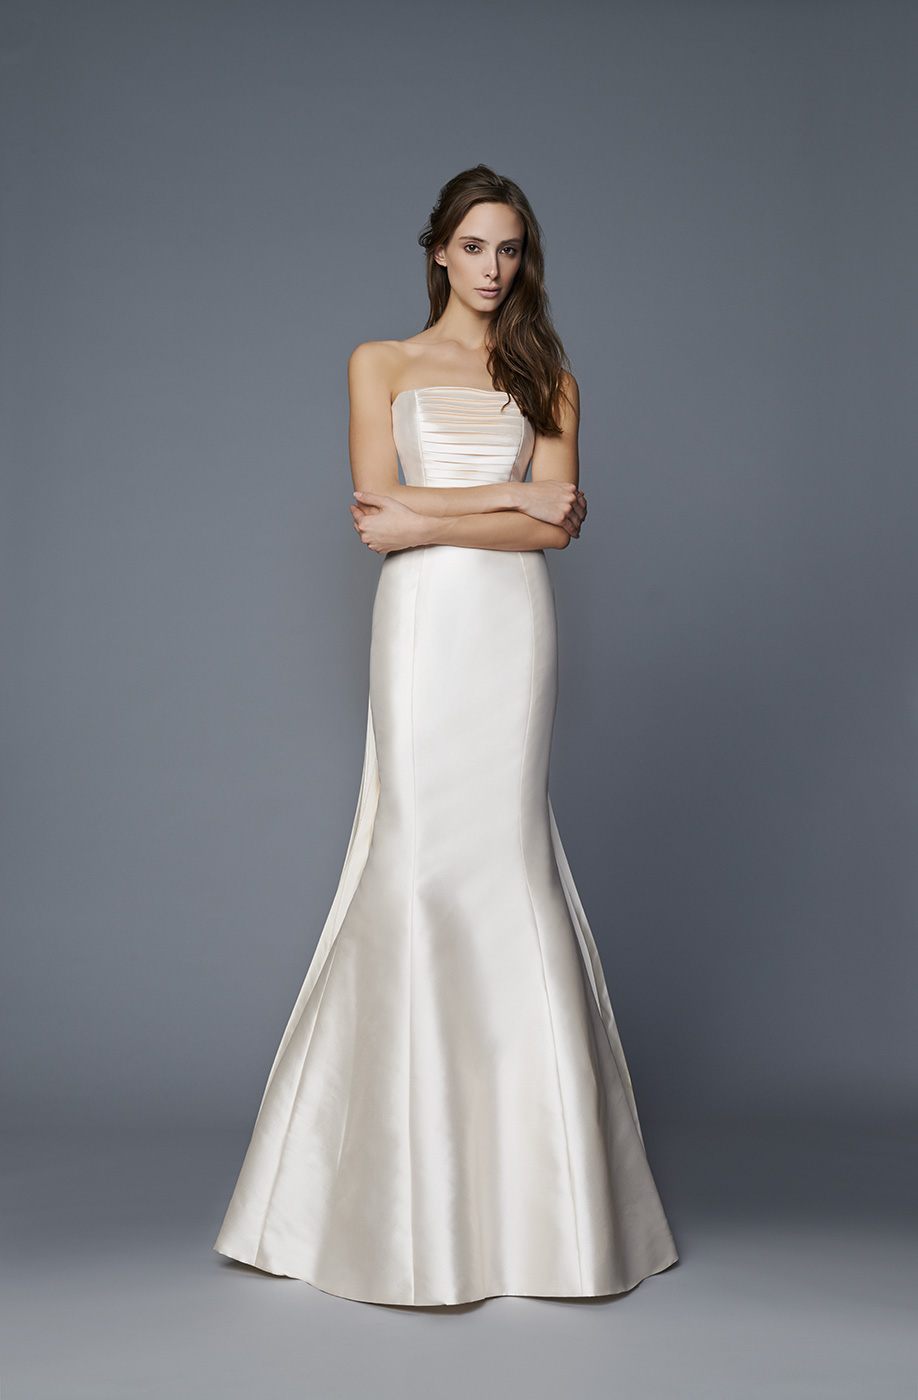 @projectfairytale: Antonio Riva Iconic Bridal Collection